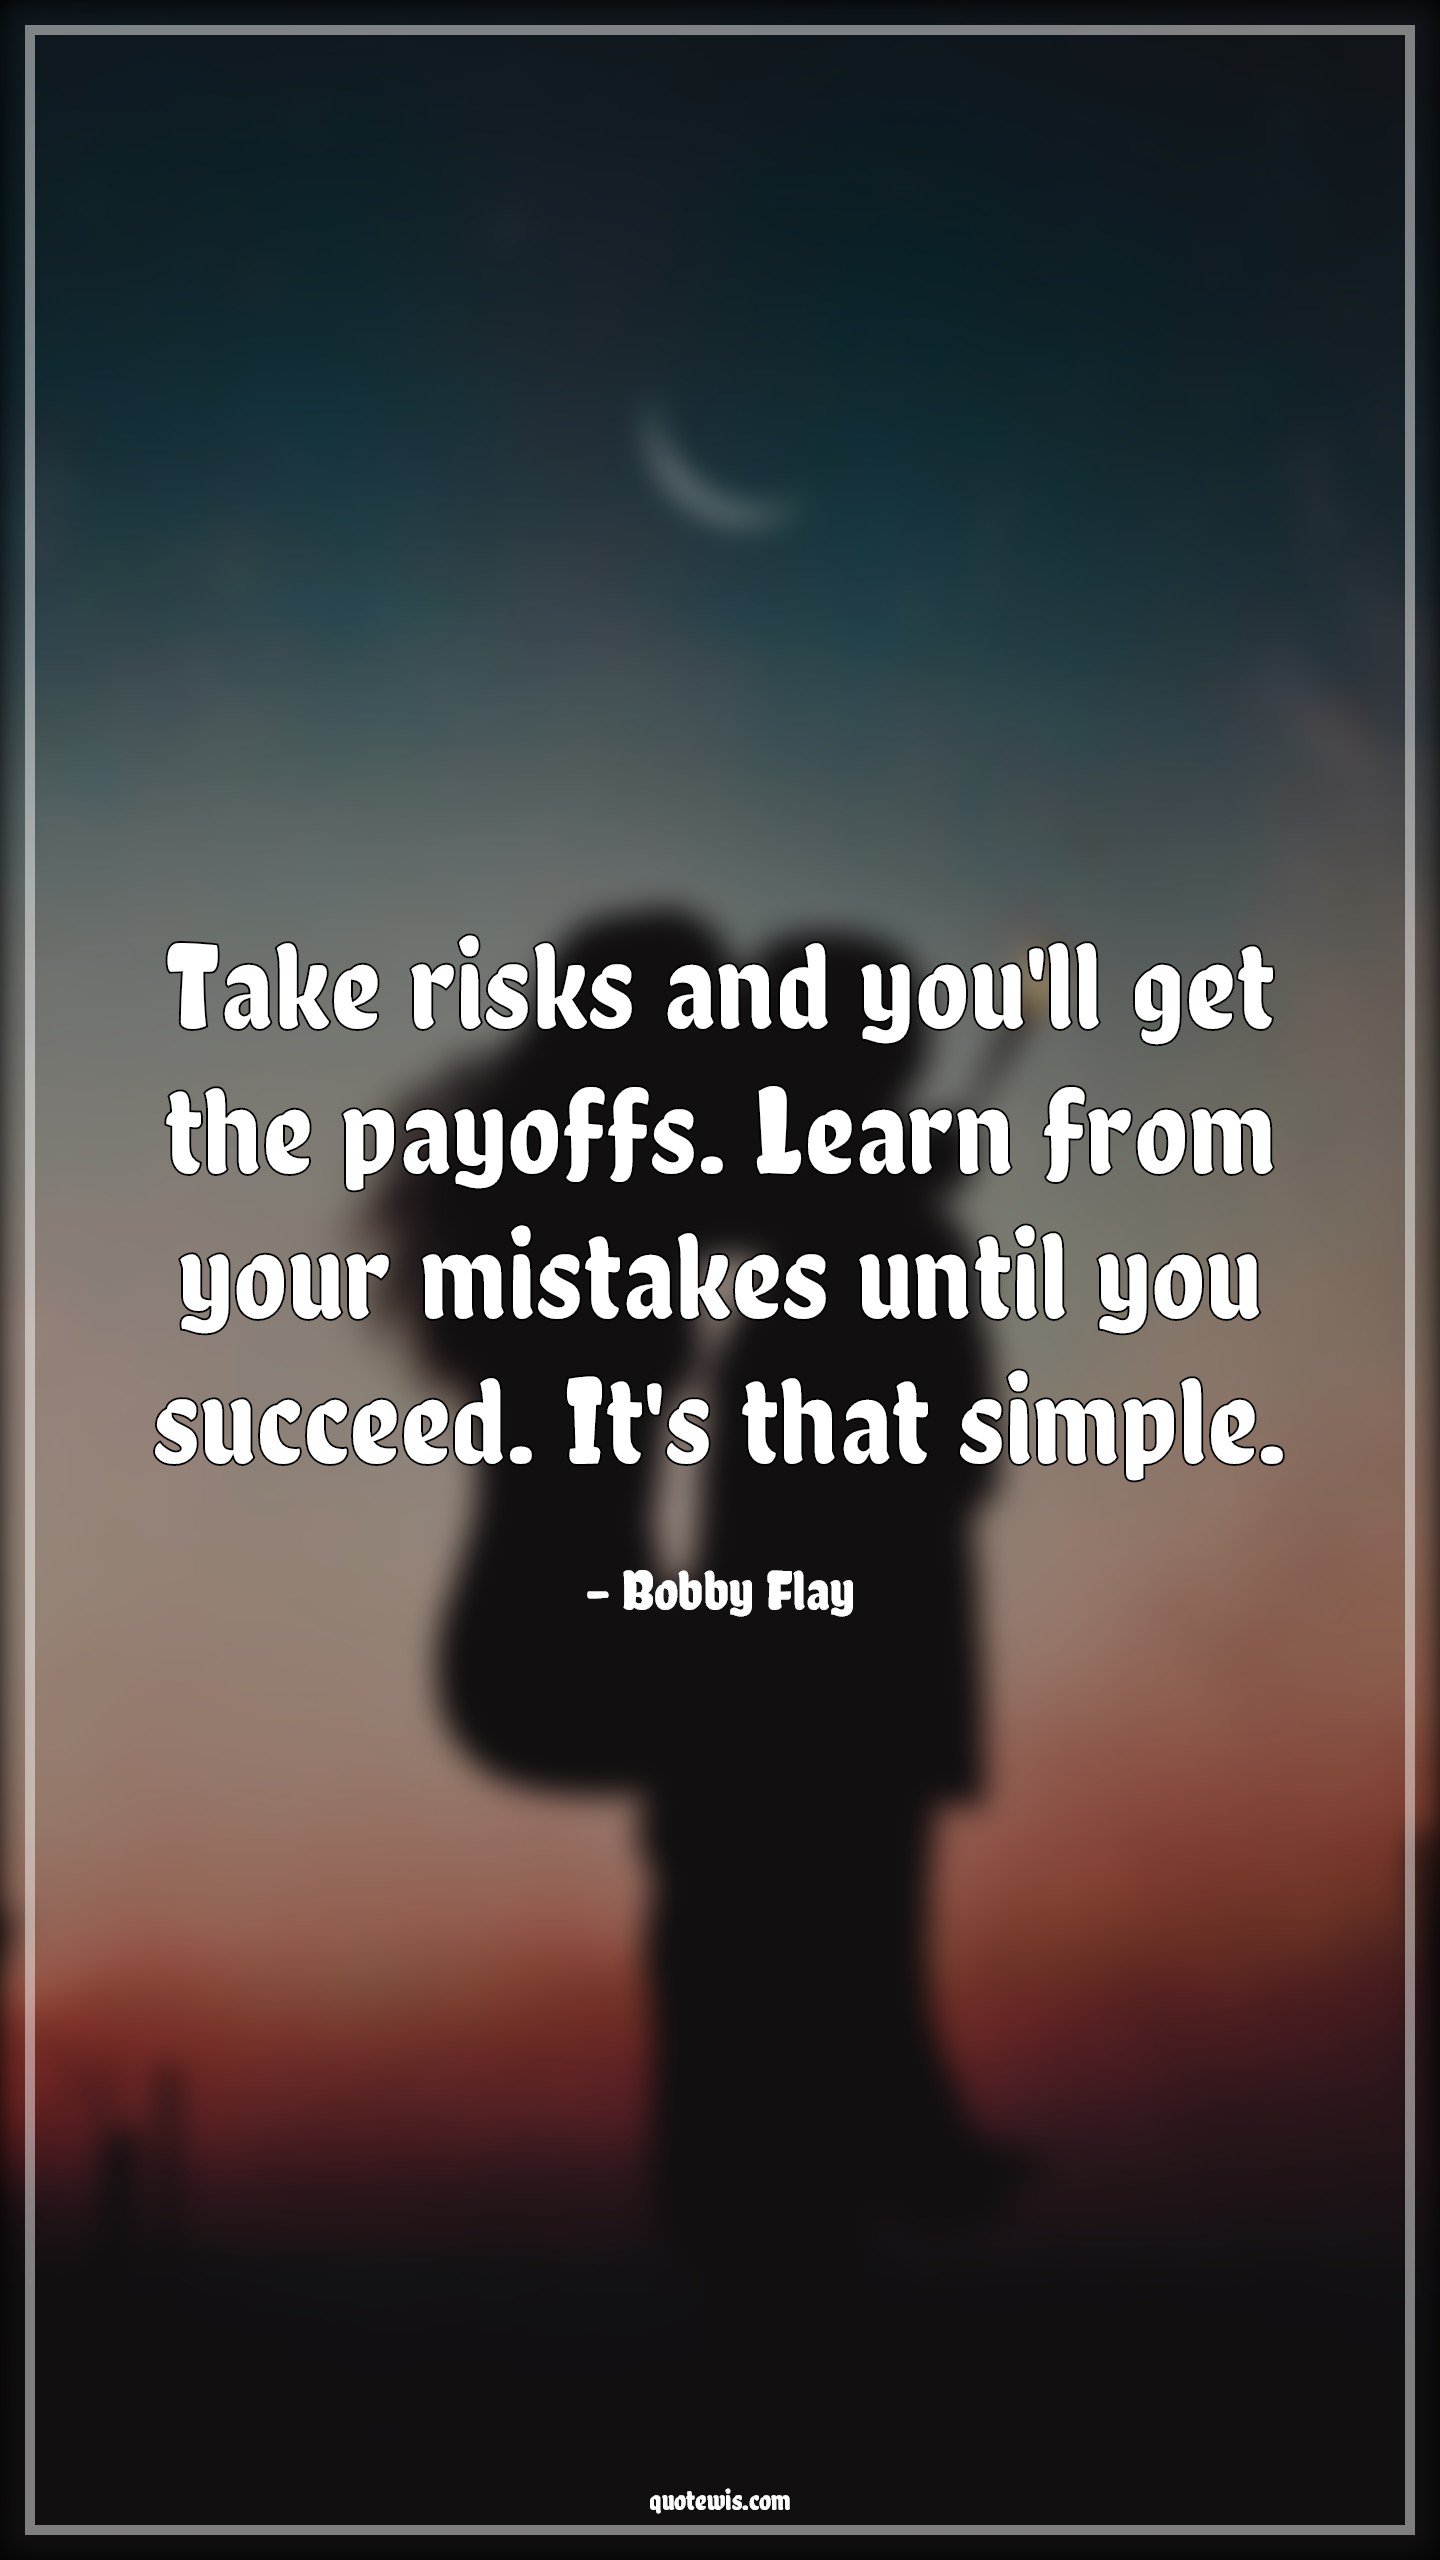 Take risks and you'll get the payoffs. Learn from your mistakes until you succeed. It's that simple.